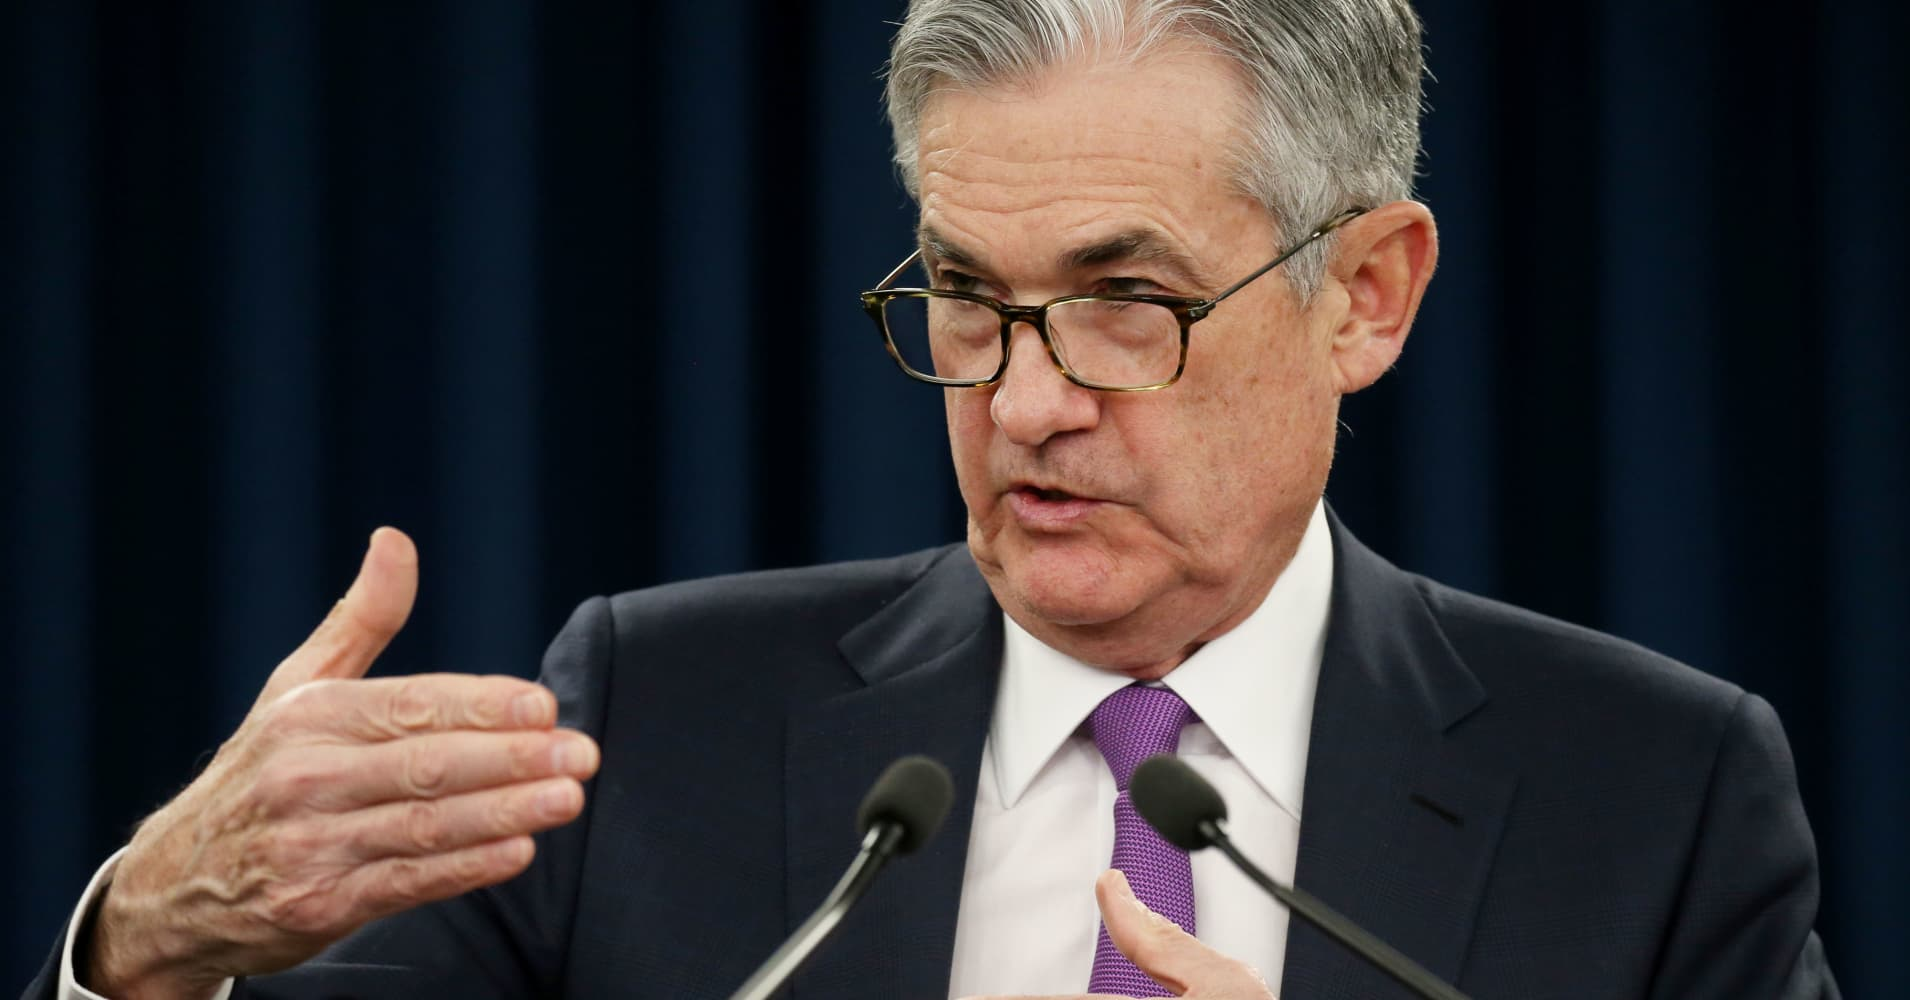 Fed says US economy ended 2018 with solid but weakening growth